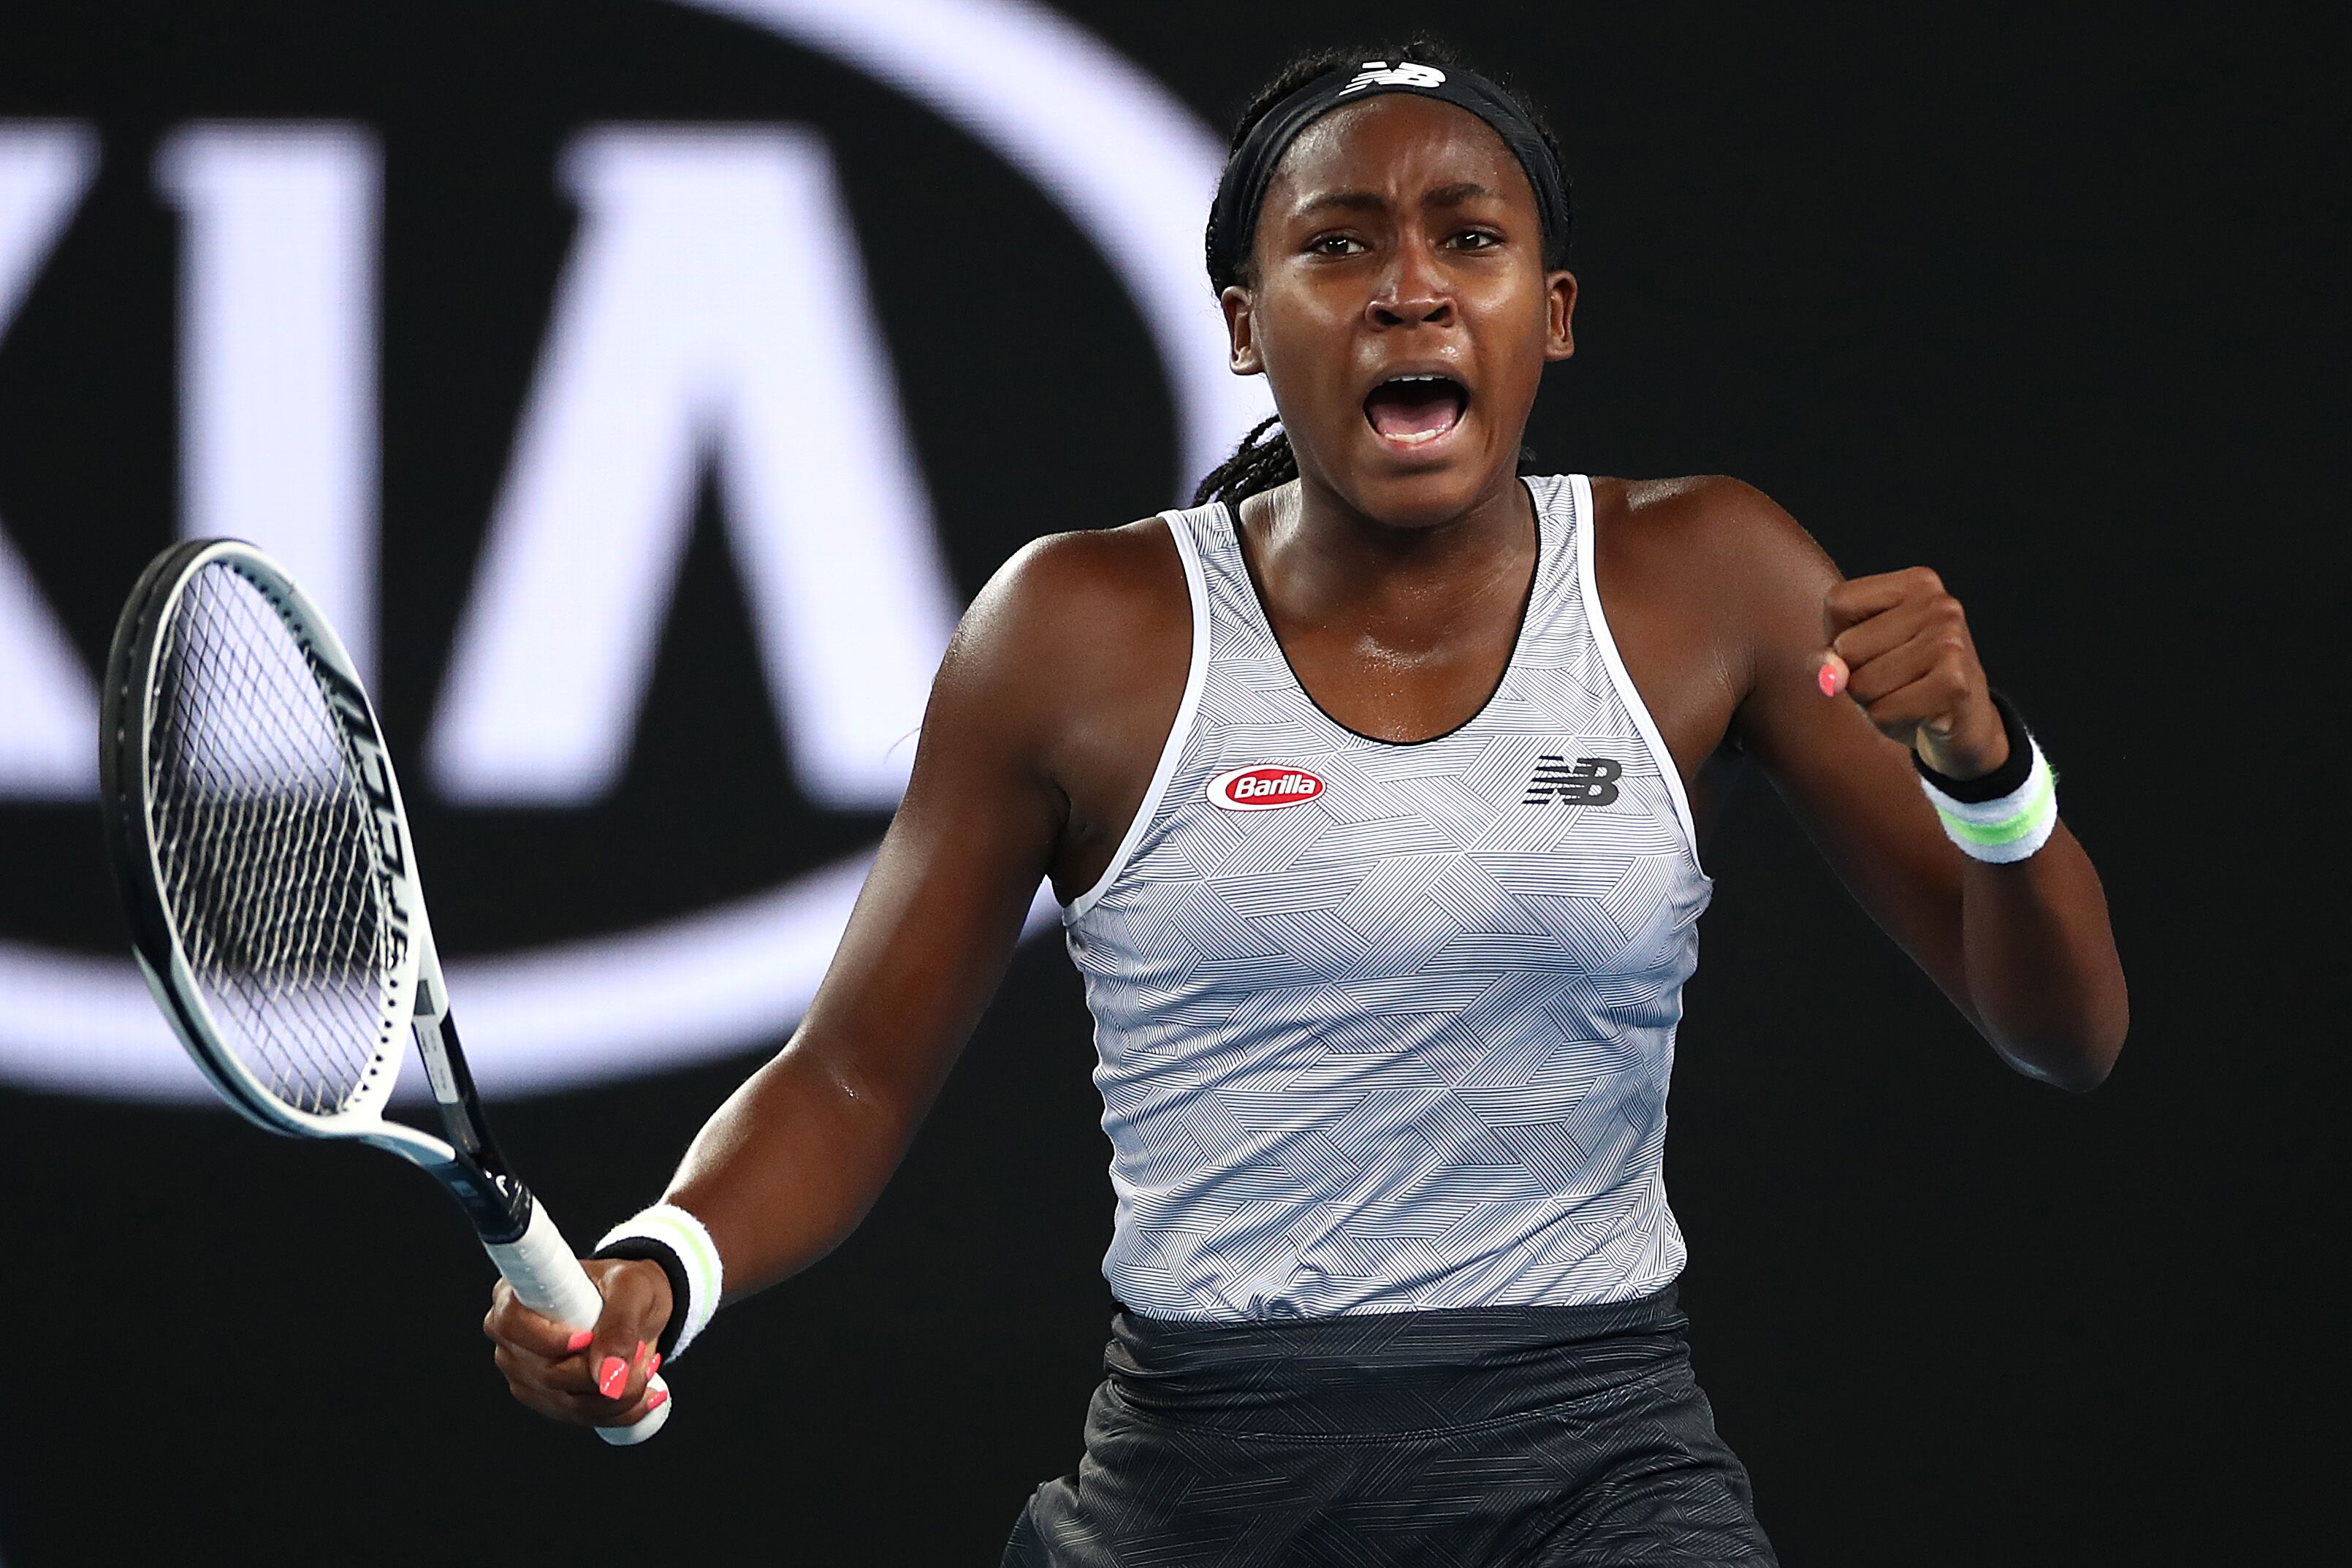 A portrait of Coco Gauff during one of her tennis matches   Source: Getty Images/GlobalImagesUkraine